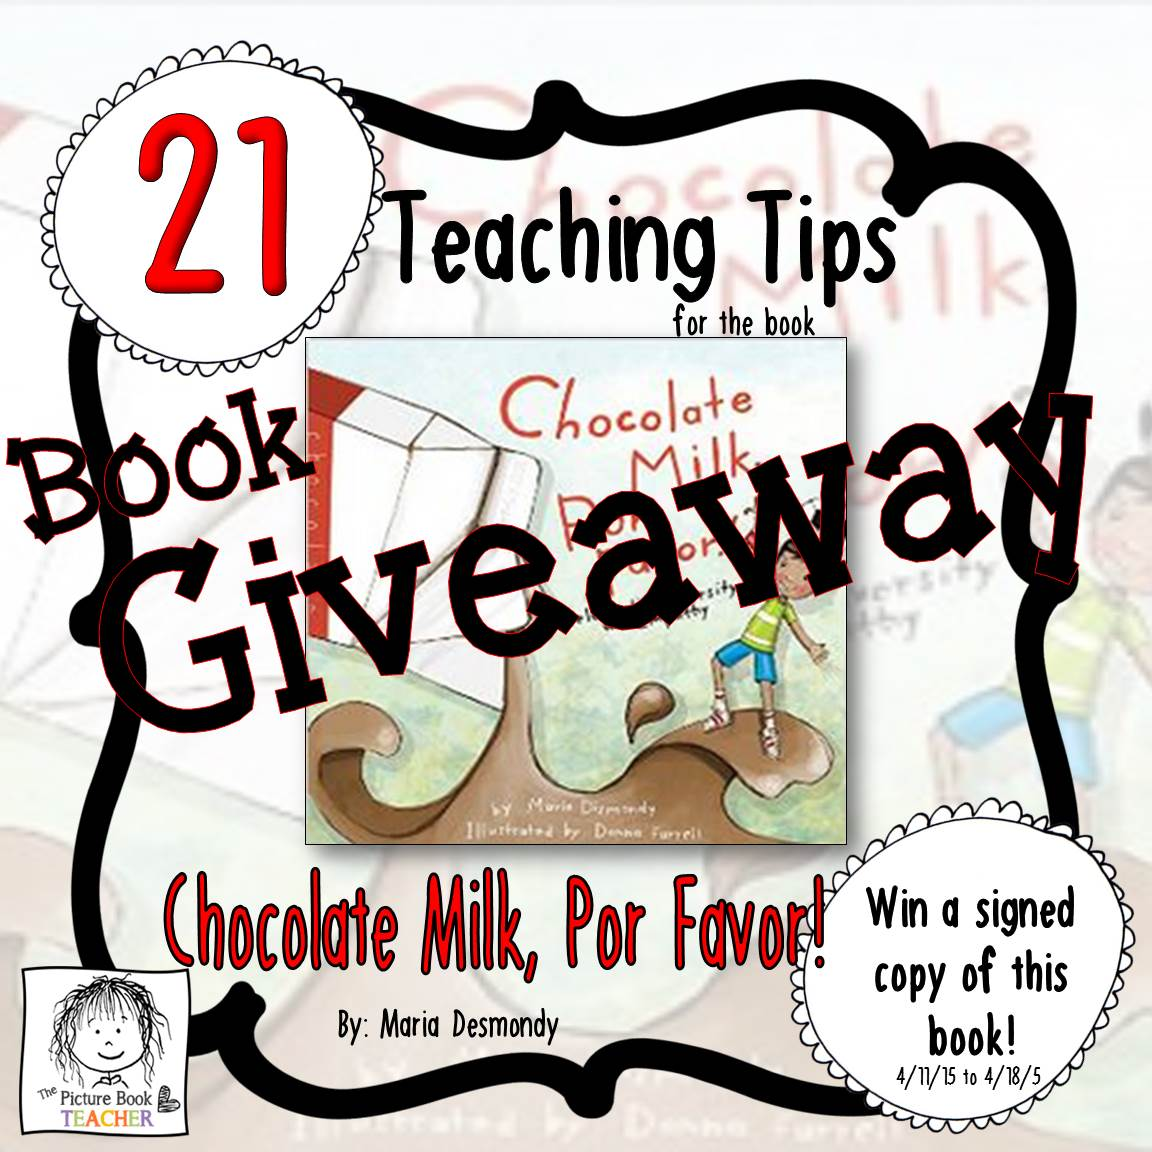 Giveaway happening 4/11/15-4/18/15 for a signed copy of Chocolate Milk, Por Favor! by Maria Desmondy at The Picture Book Teacher's Blog.